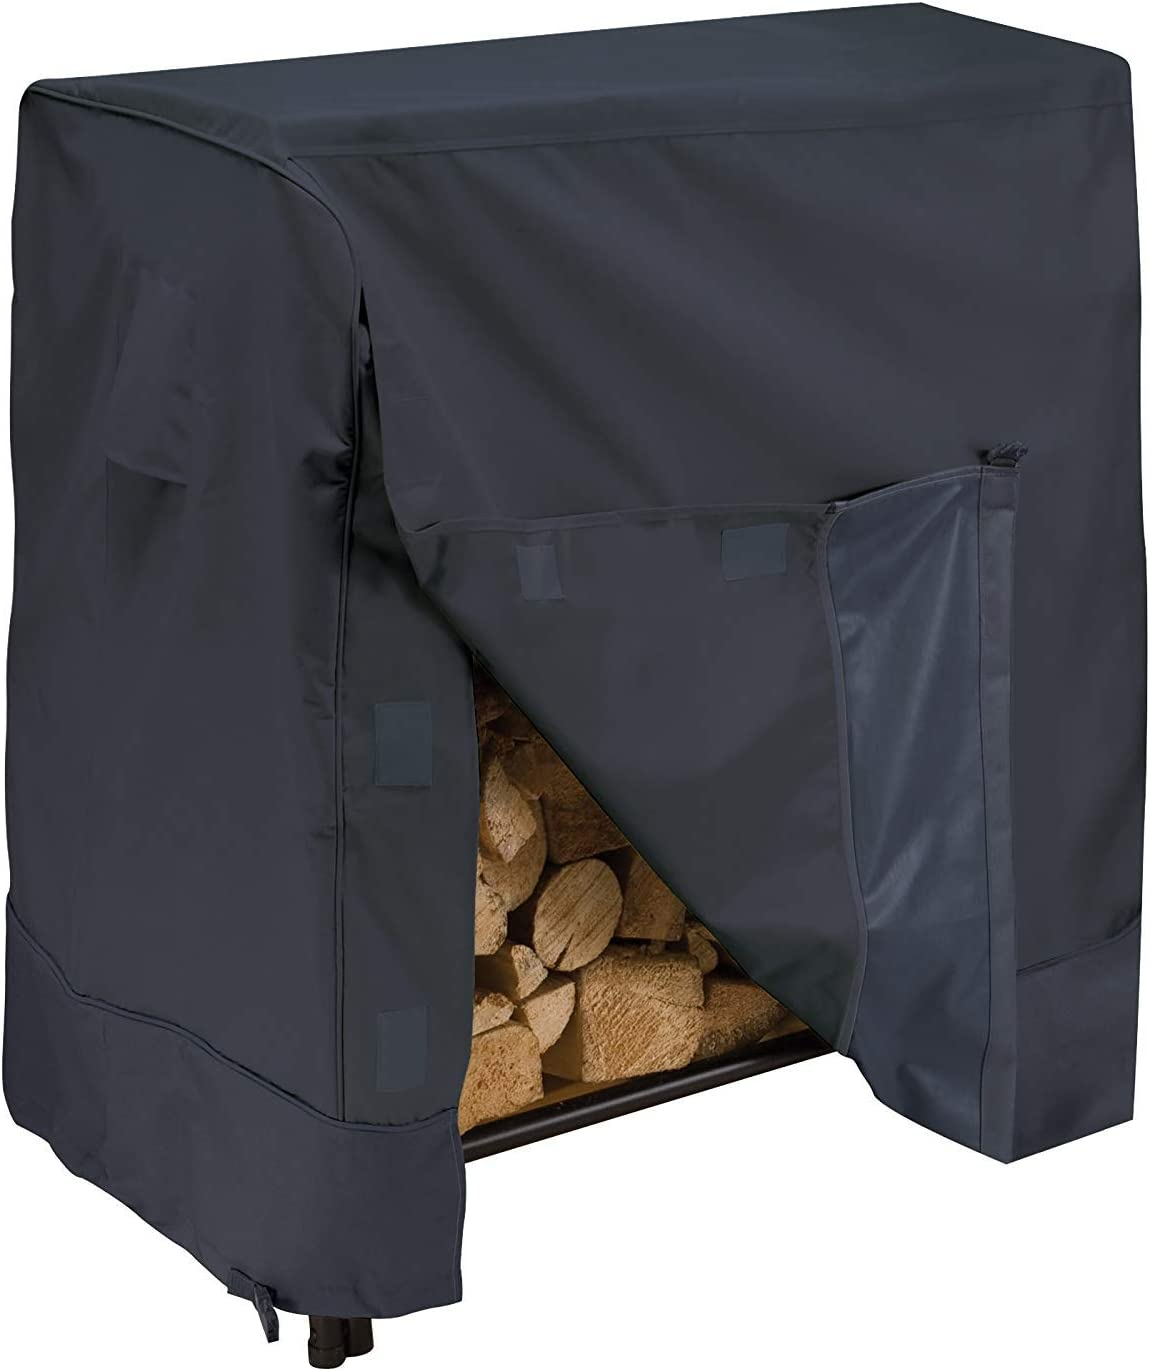 Qeedio Firewood Log Rack Cover 4-Feet Heavy Duty Waterproof Outdoor Fire Wood Protection Cover UV Resistant Firewood Log Protector with Carry Bag